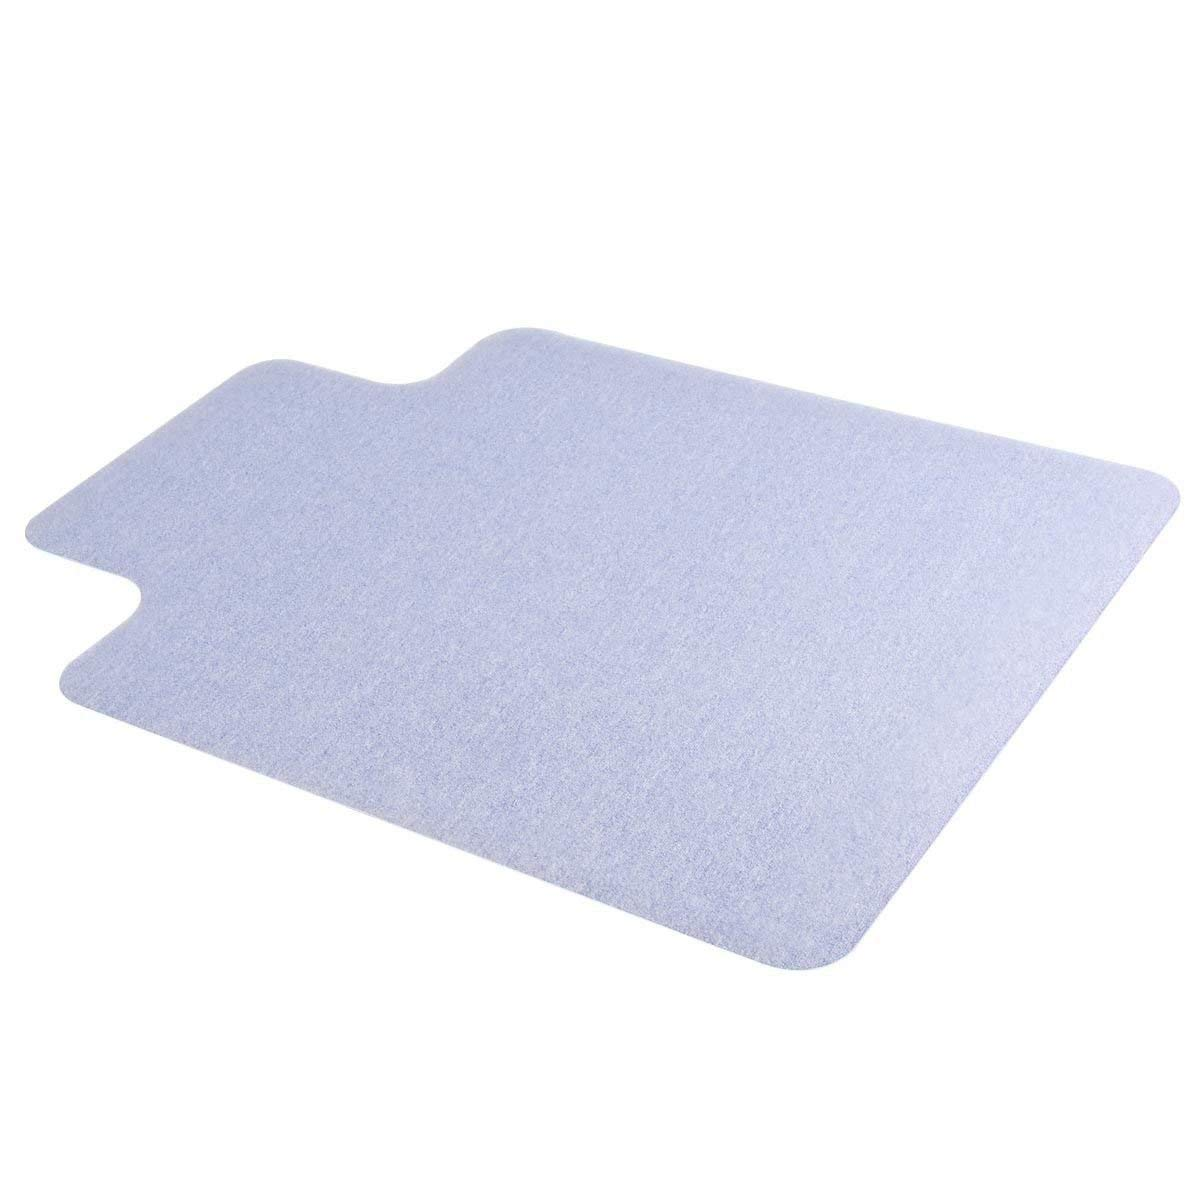 COSTWAY 48'' x 36'' Clear PVC Office Chair Mat for Hard Floor Tile Protection to 1.50mm Thick (48'' x 36'')